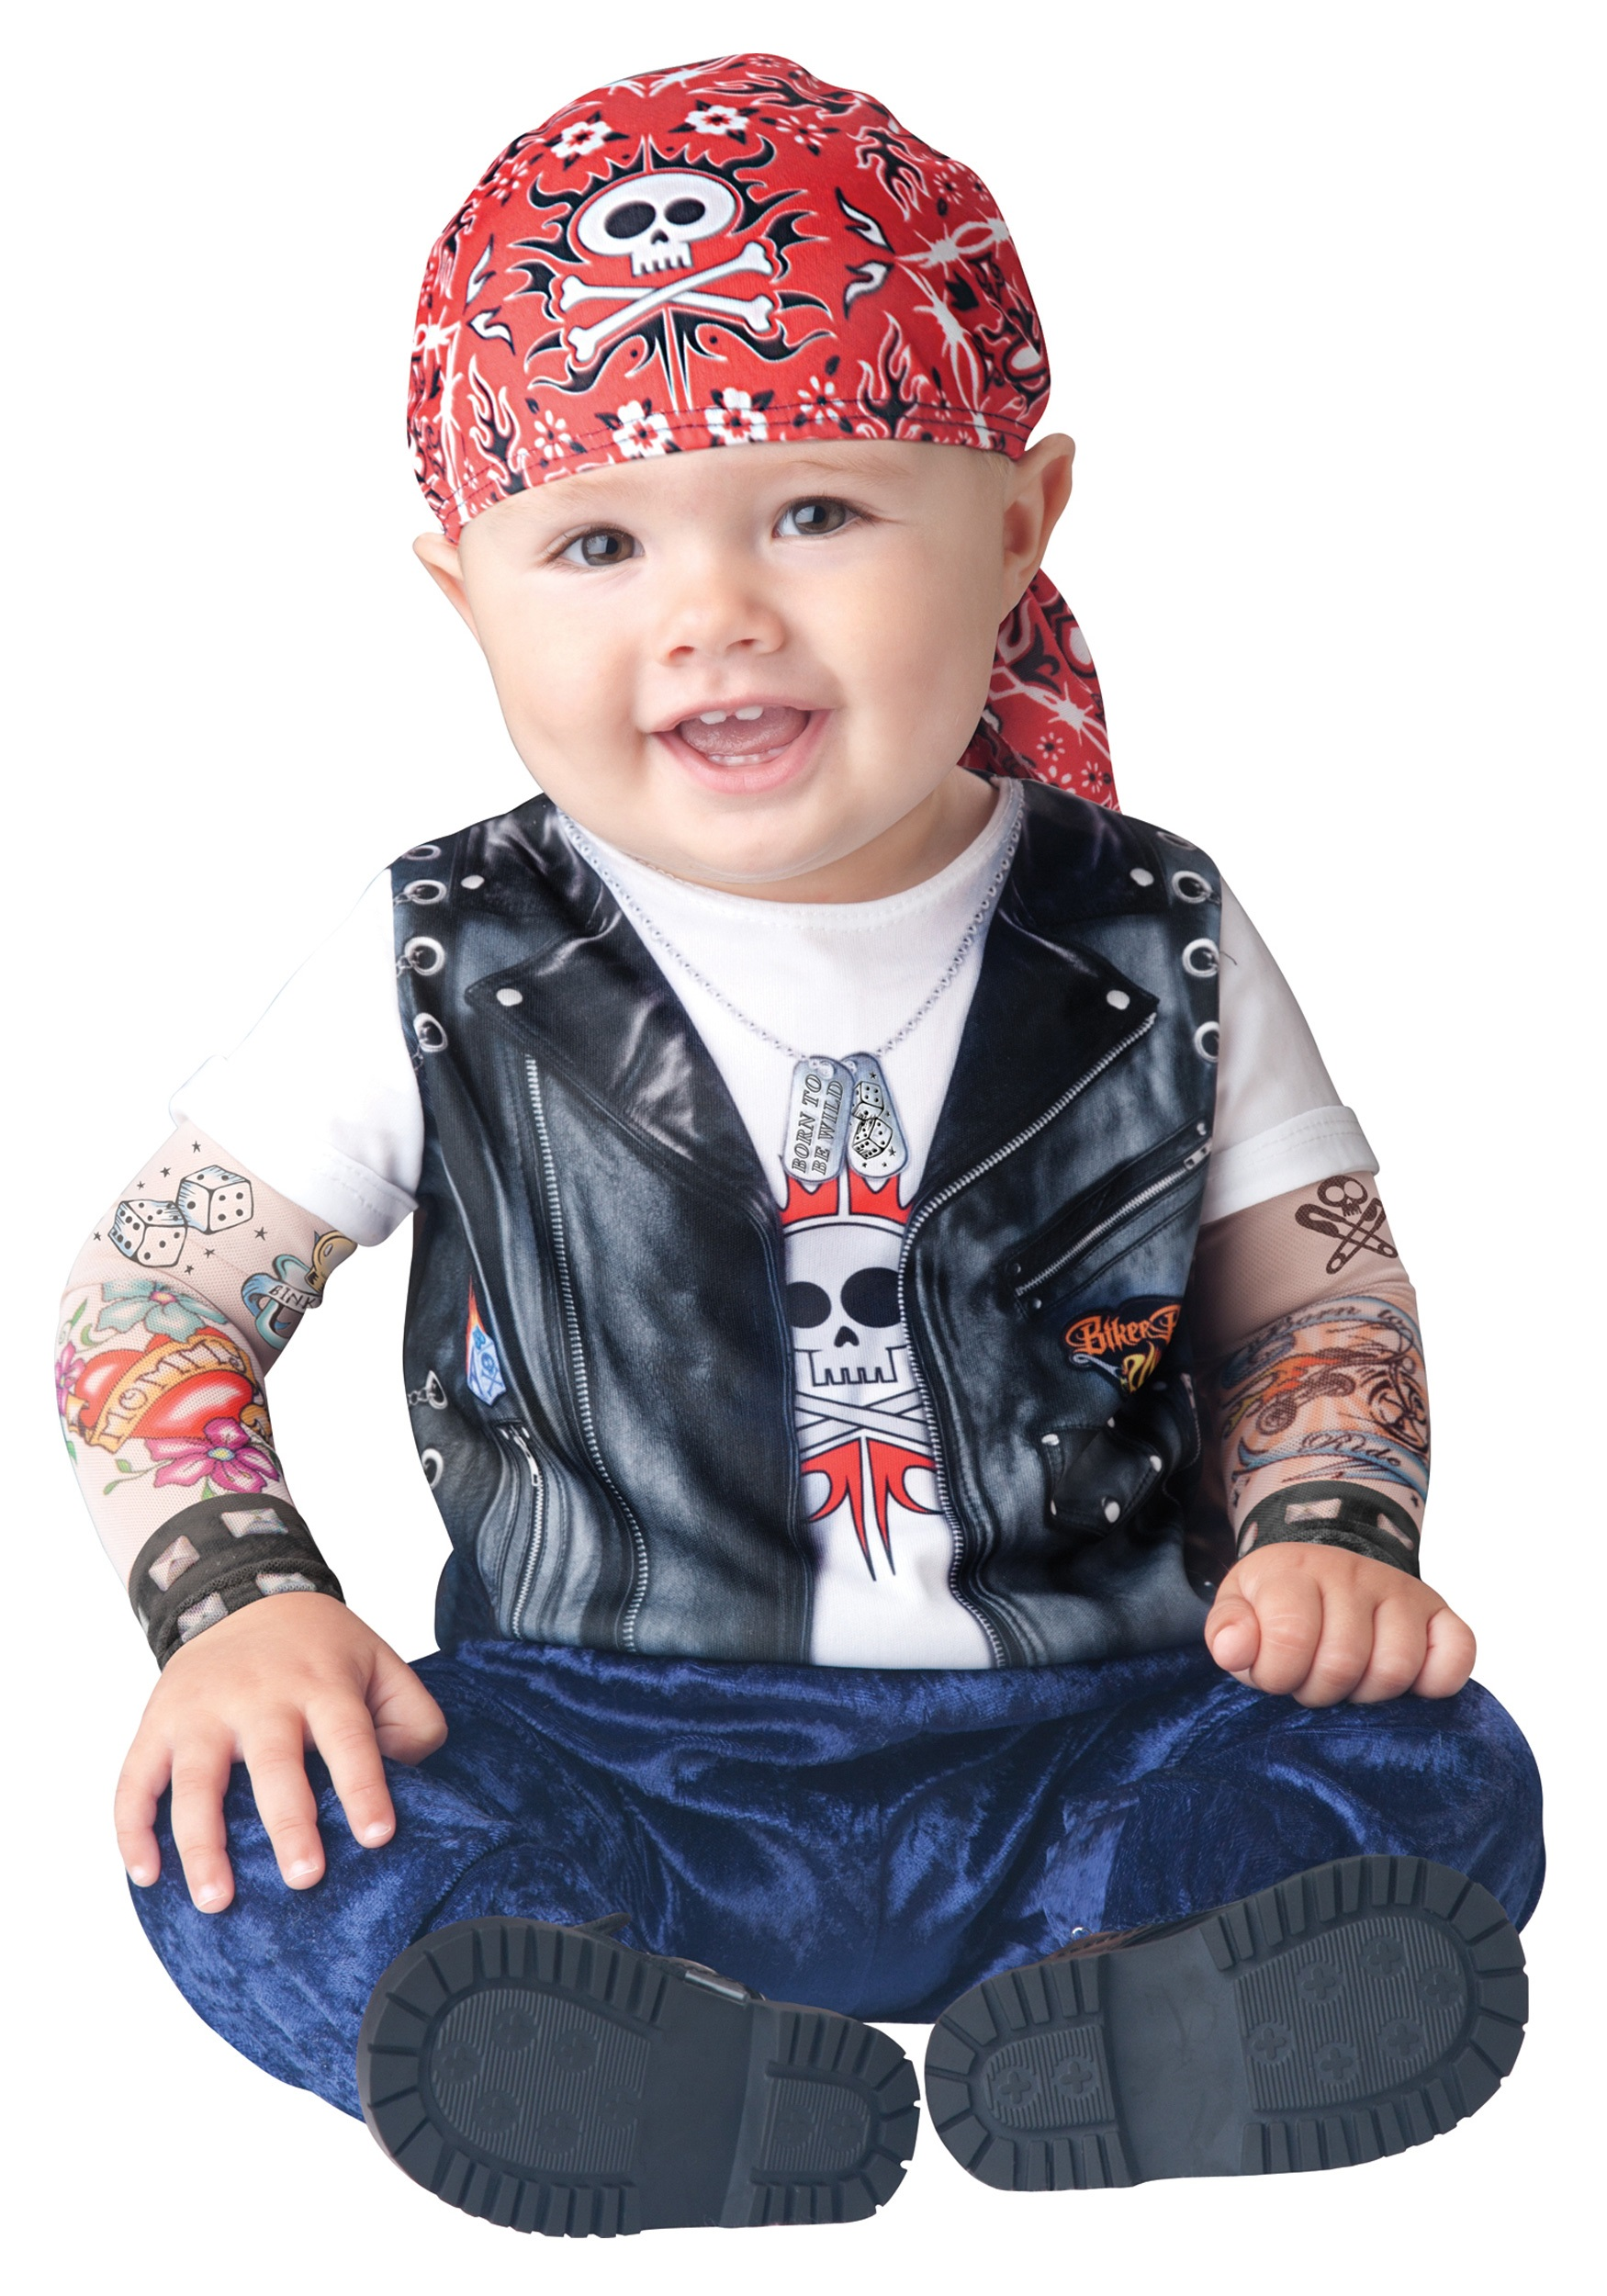 Baby Born to be Wild Biker Costume